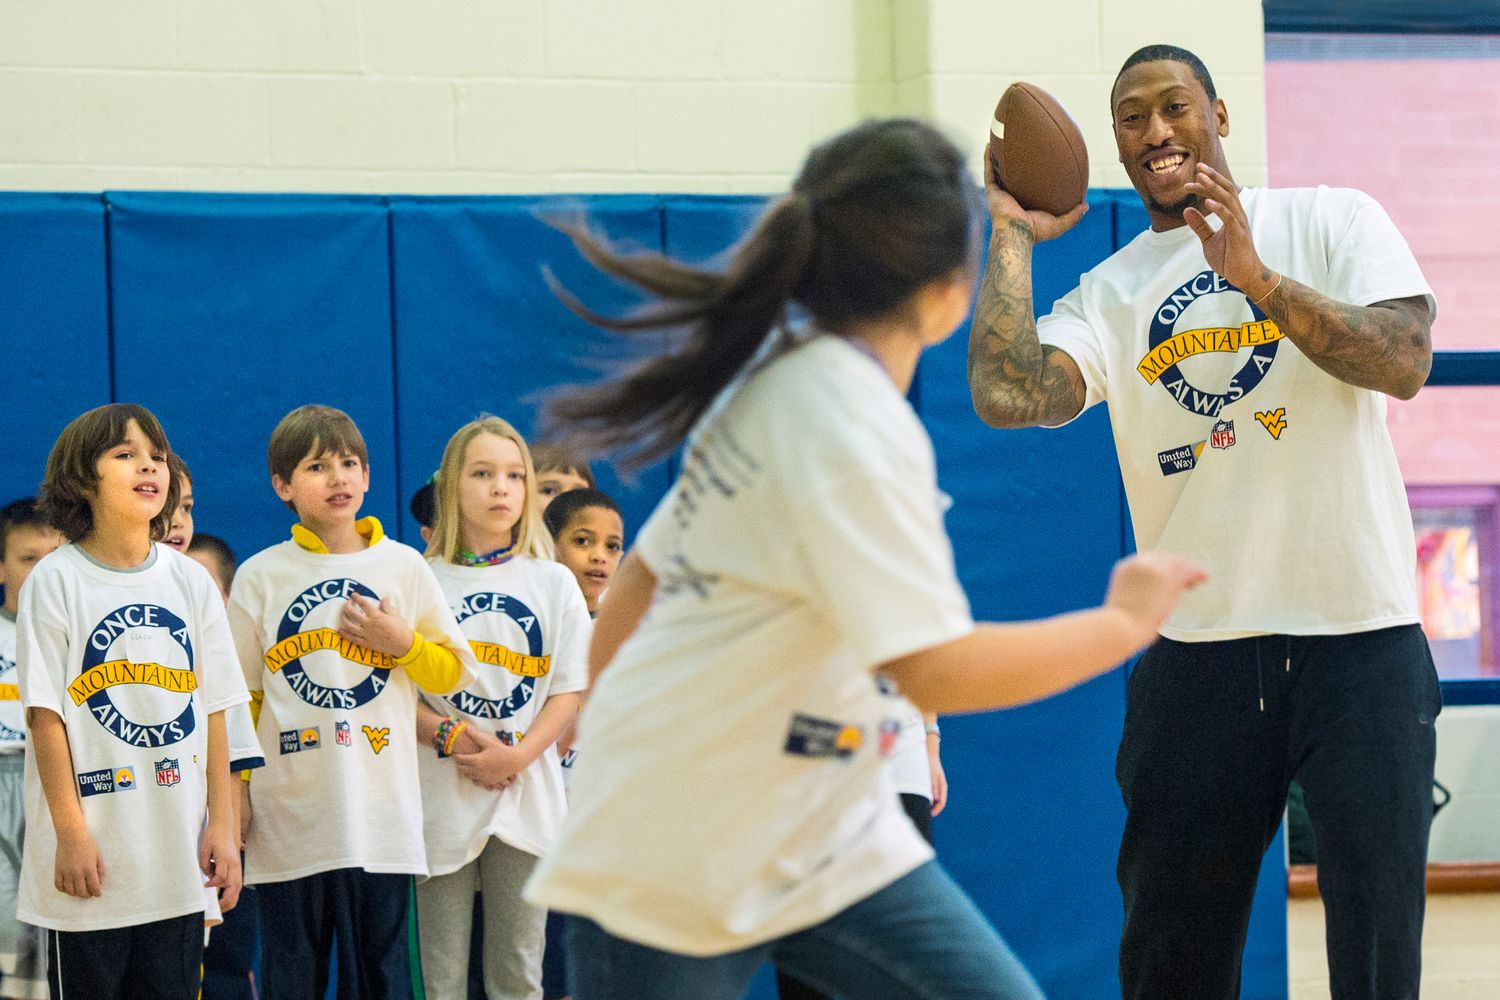 Bruce Irvin plays football with children.